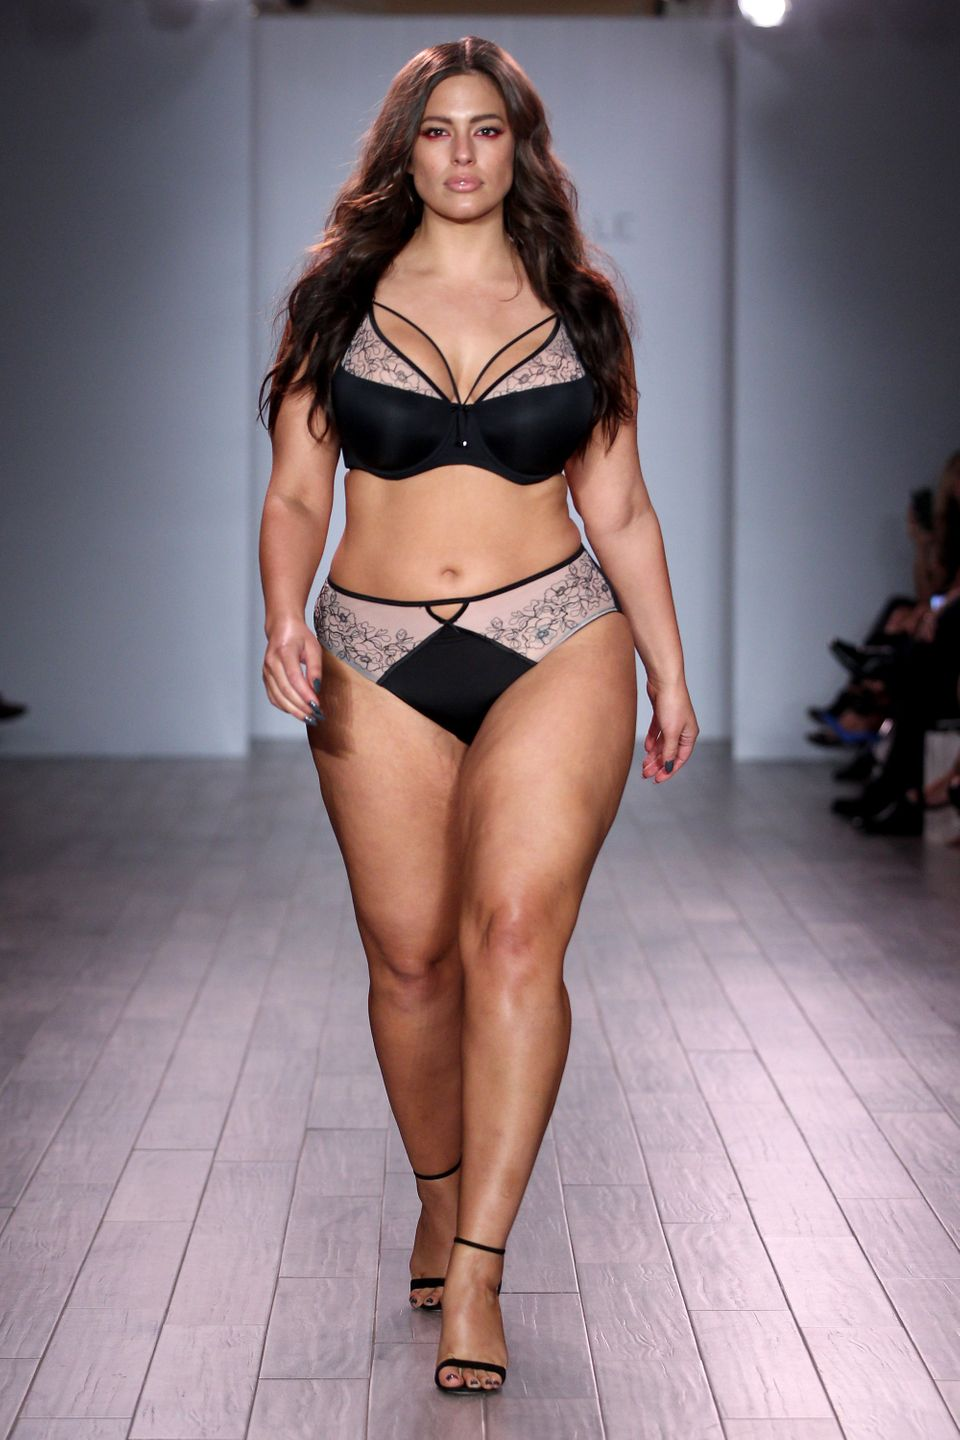 ashley graham s boyfriends broke up with her for the stupidest